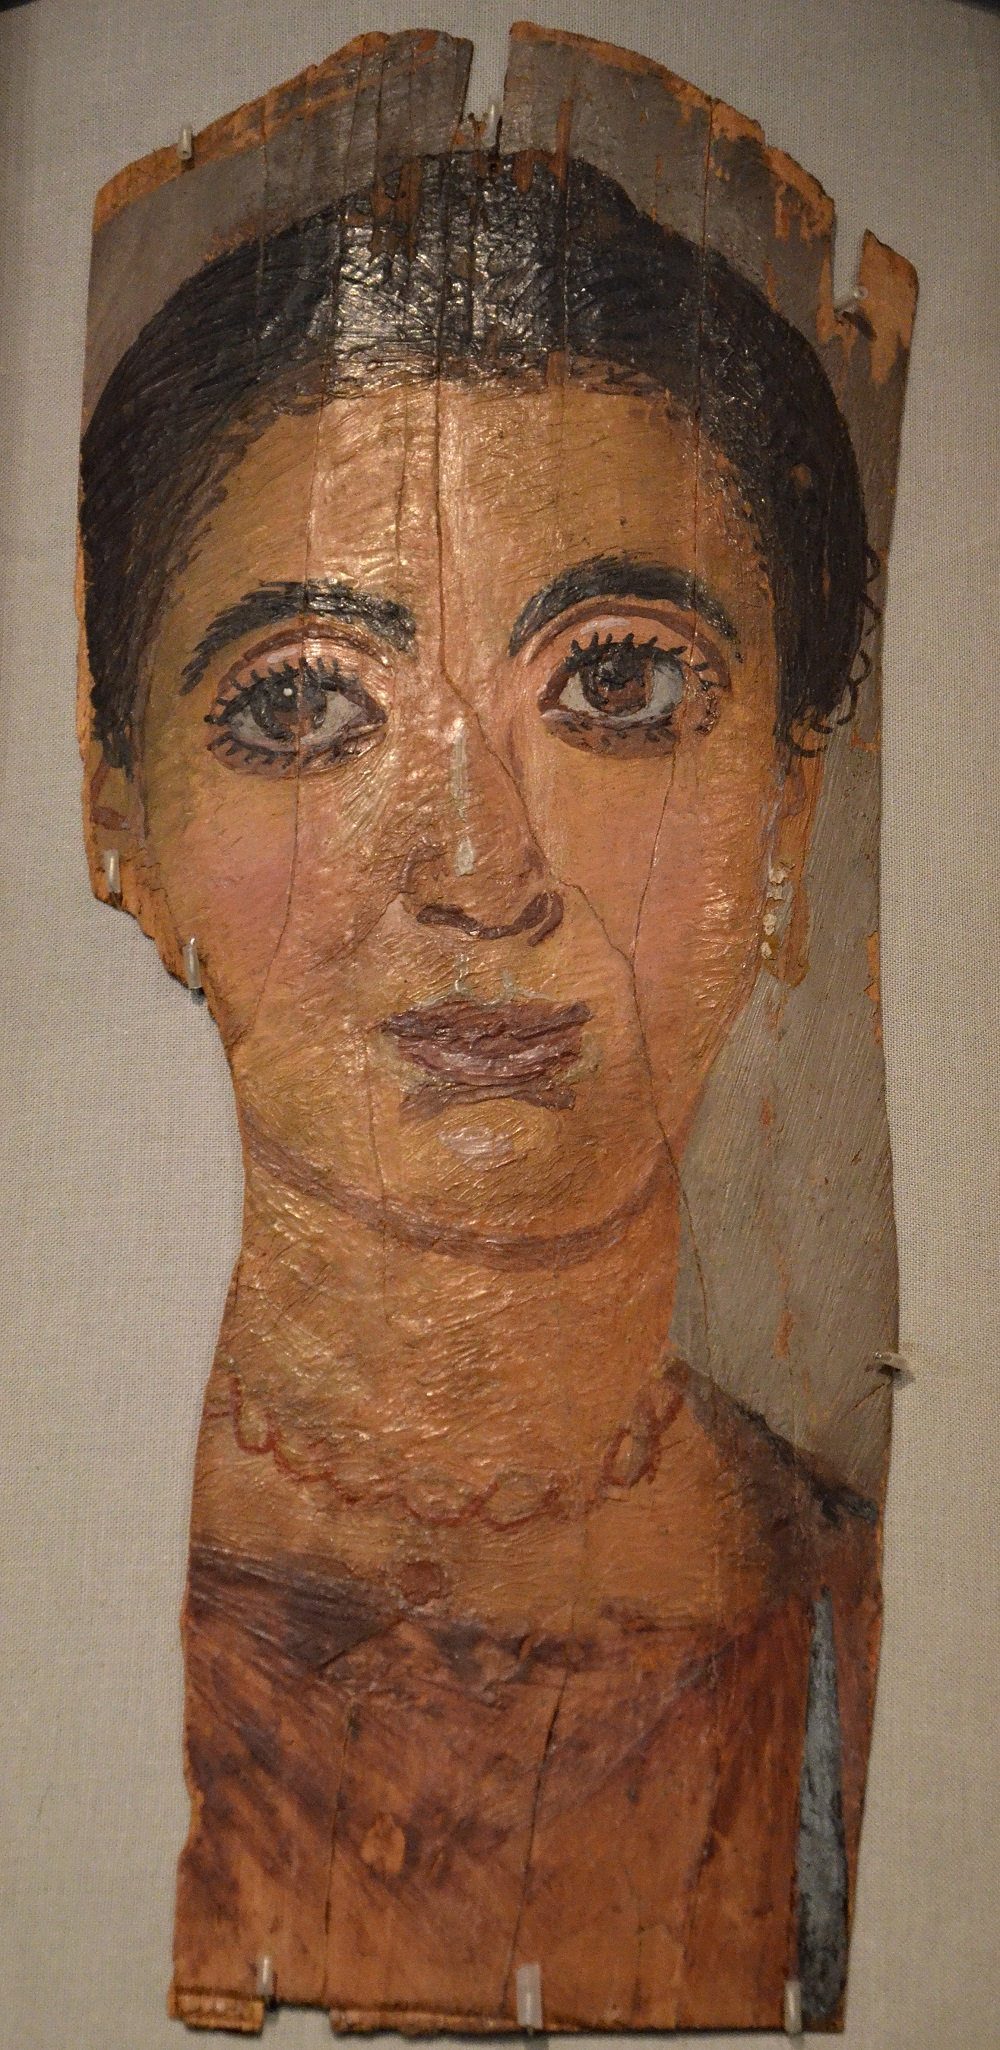 Wax encaustic funerary painting on wood | Second-century Roman Egypt, in the collection of the Badisches Landesmuseum (Karlsruhe) |  Image Source